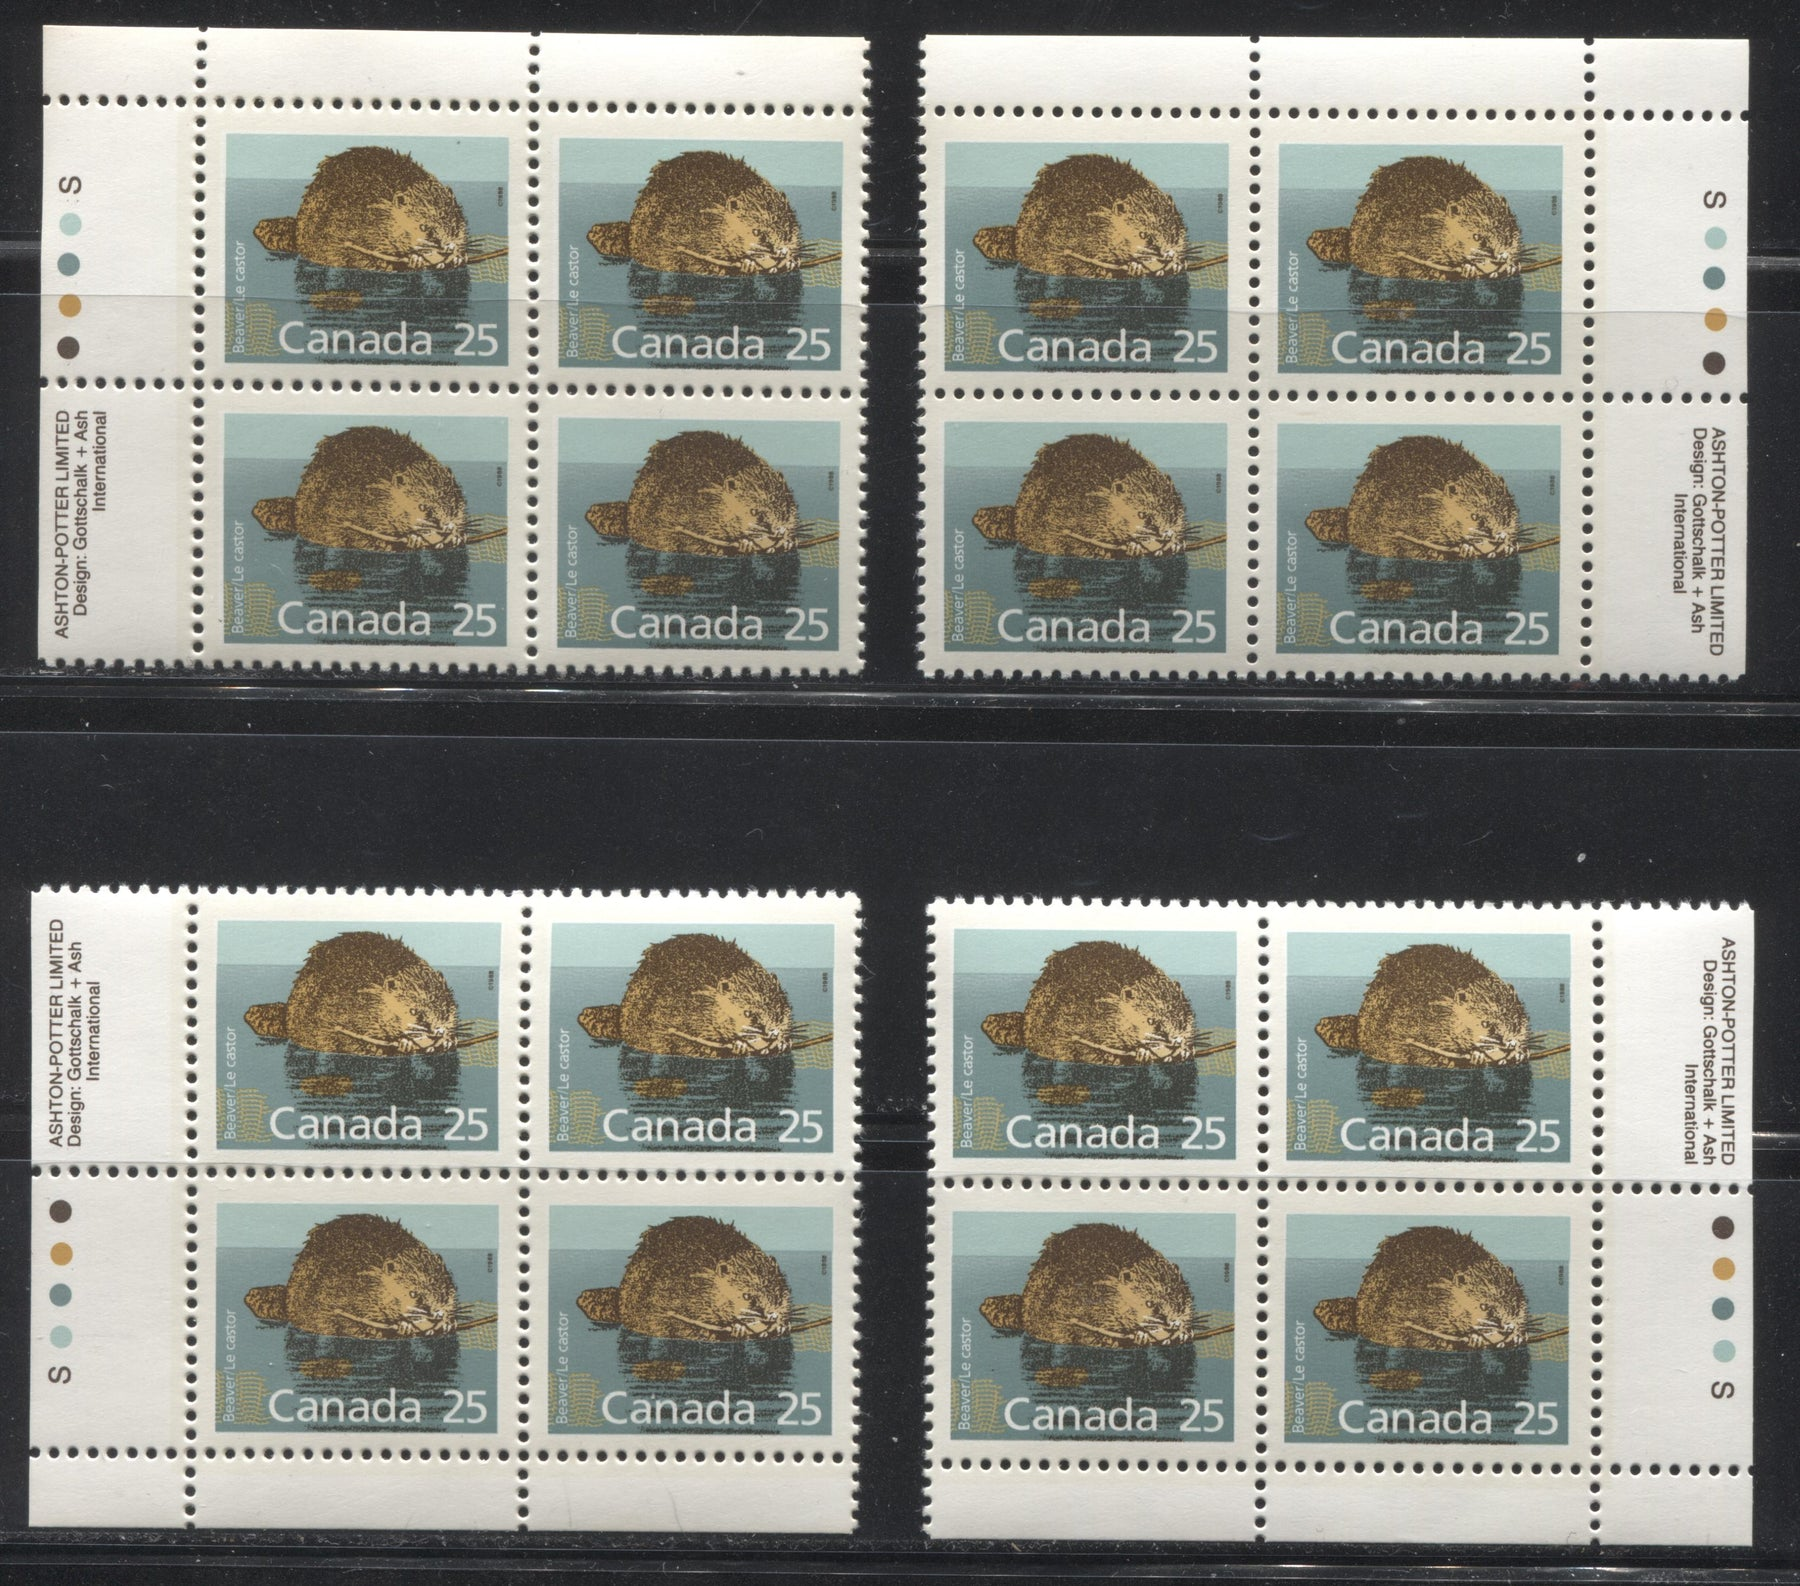 Canada #1161 25c Beaver 1988-1991 Wildlife and Architecture Issue, a VFNH Set of Inscription Blocks on NF/DF Slater Paper